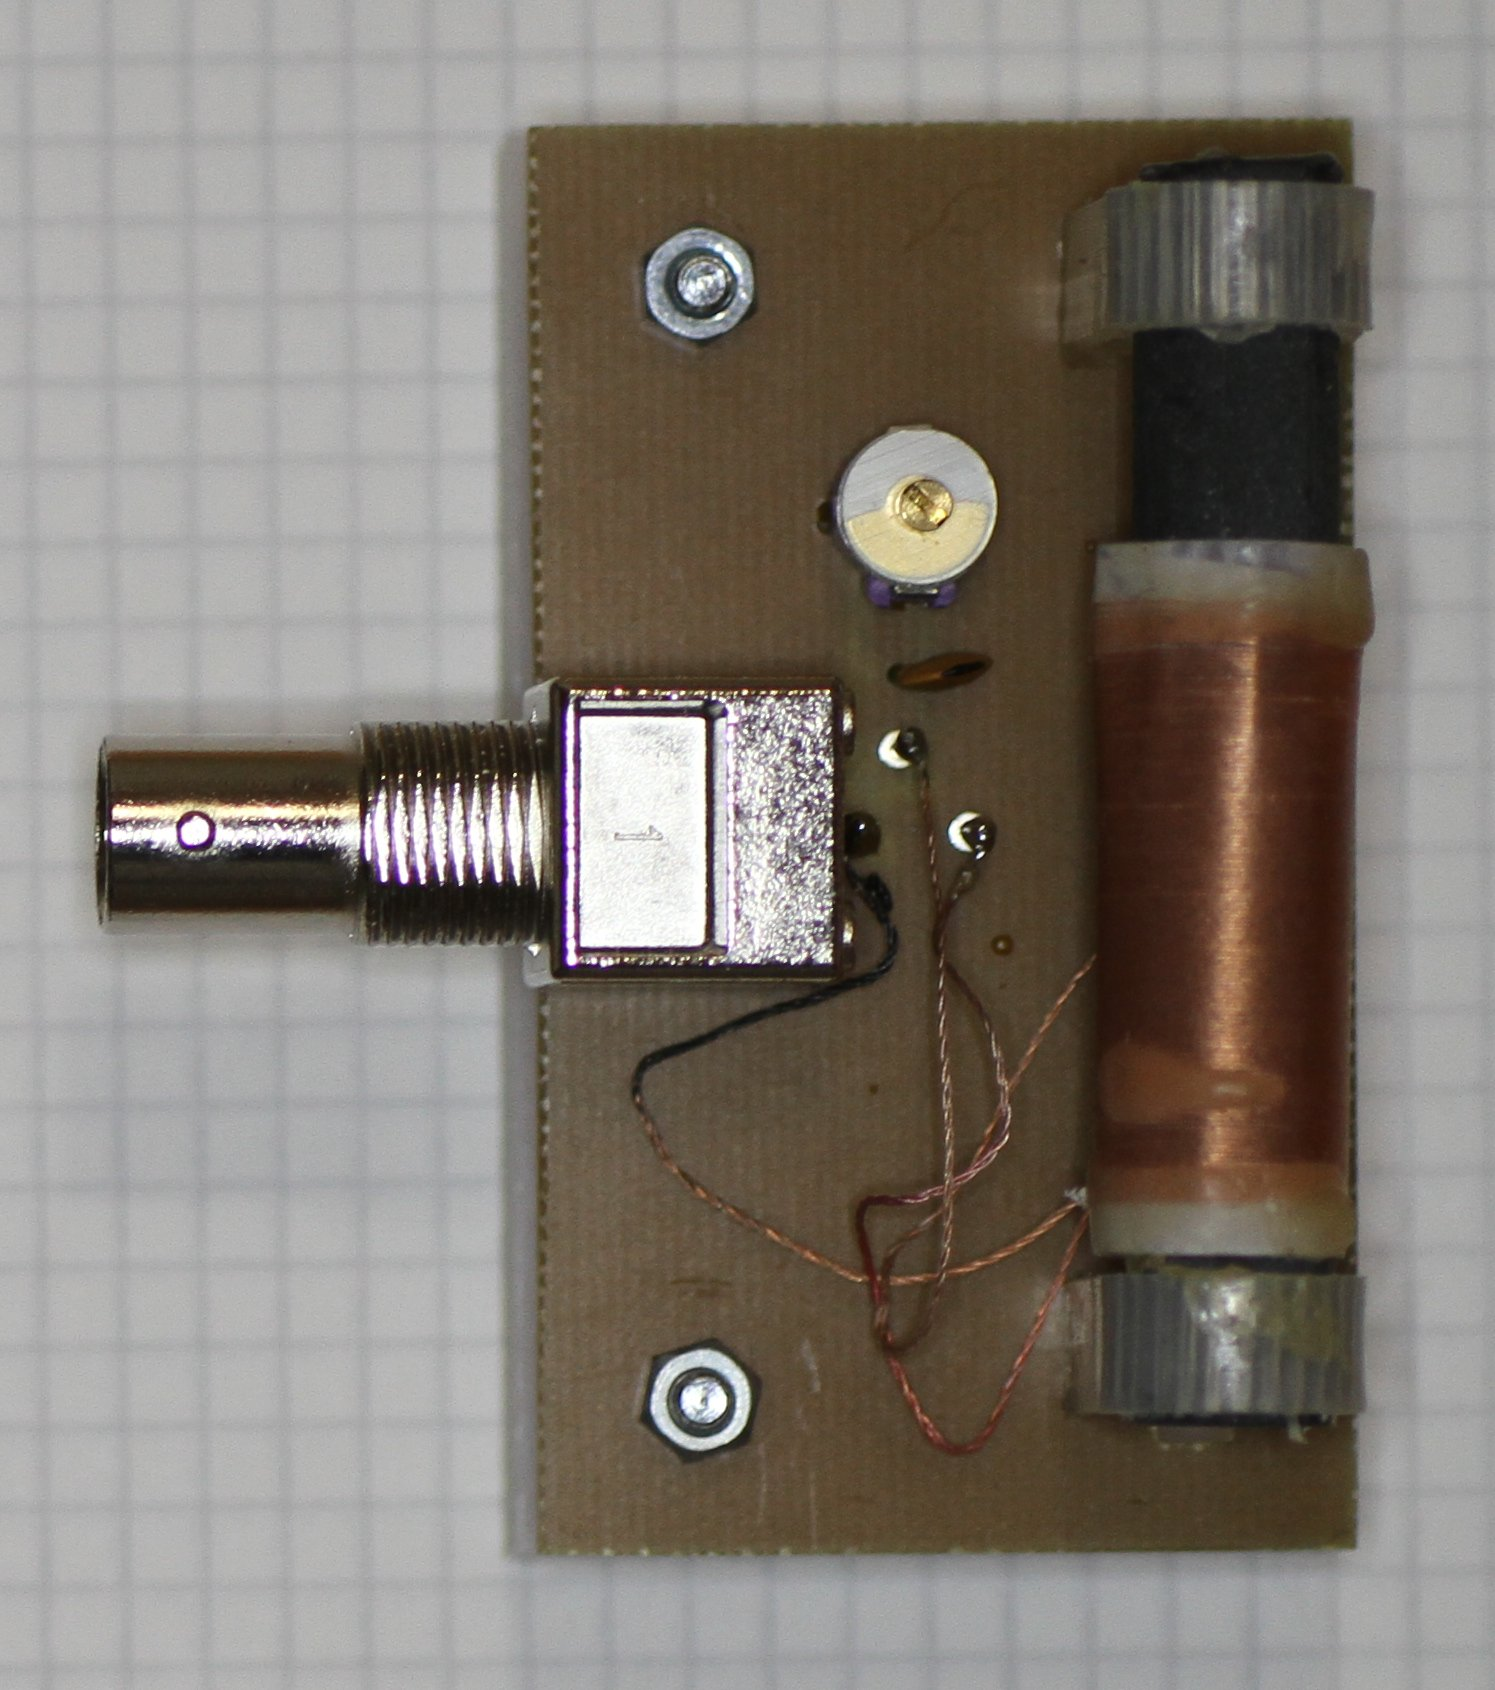 A Simple Am Modulator How To Build Opamp Vhf Fm Transmitter Picture Of The Coupling Coil